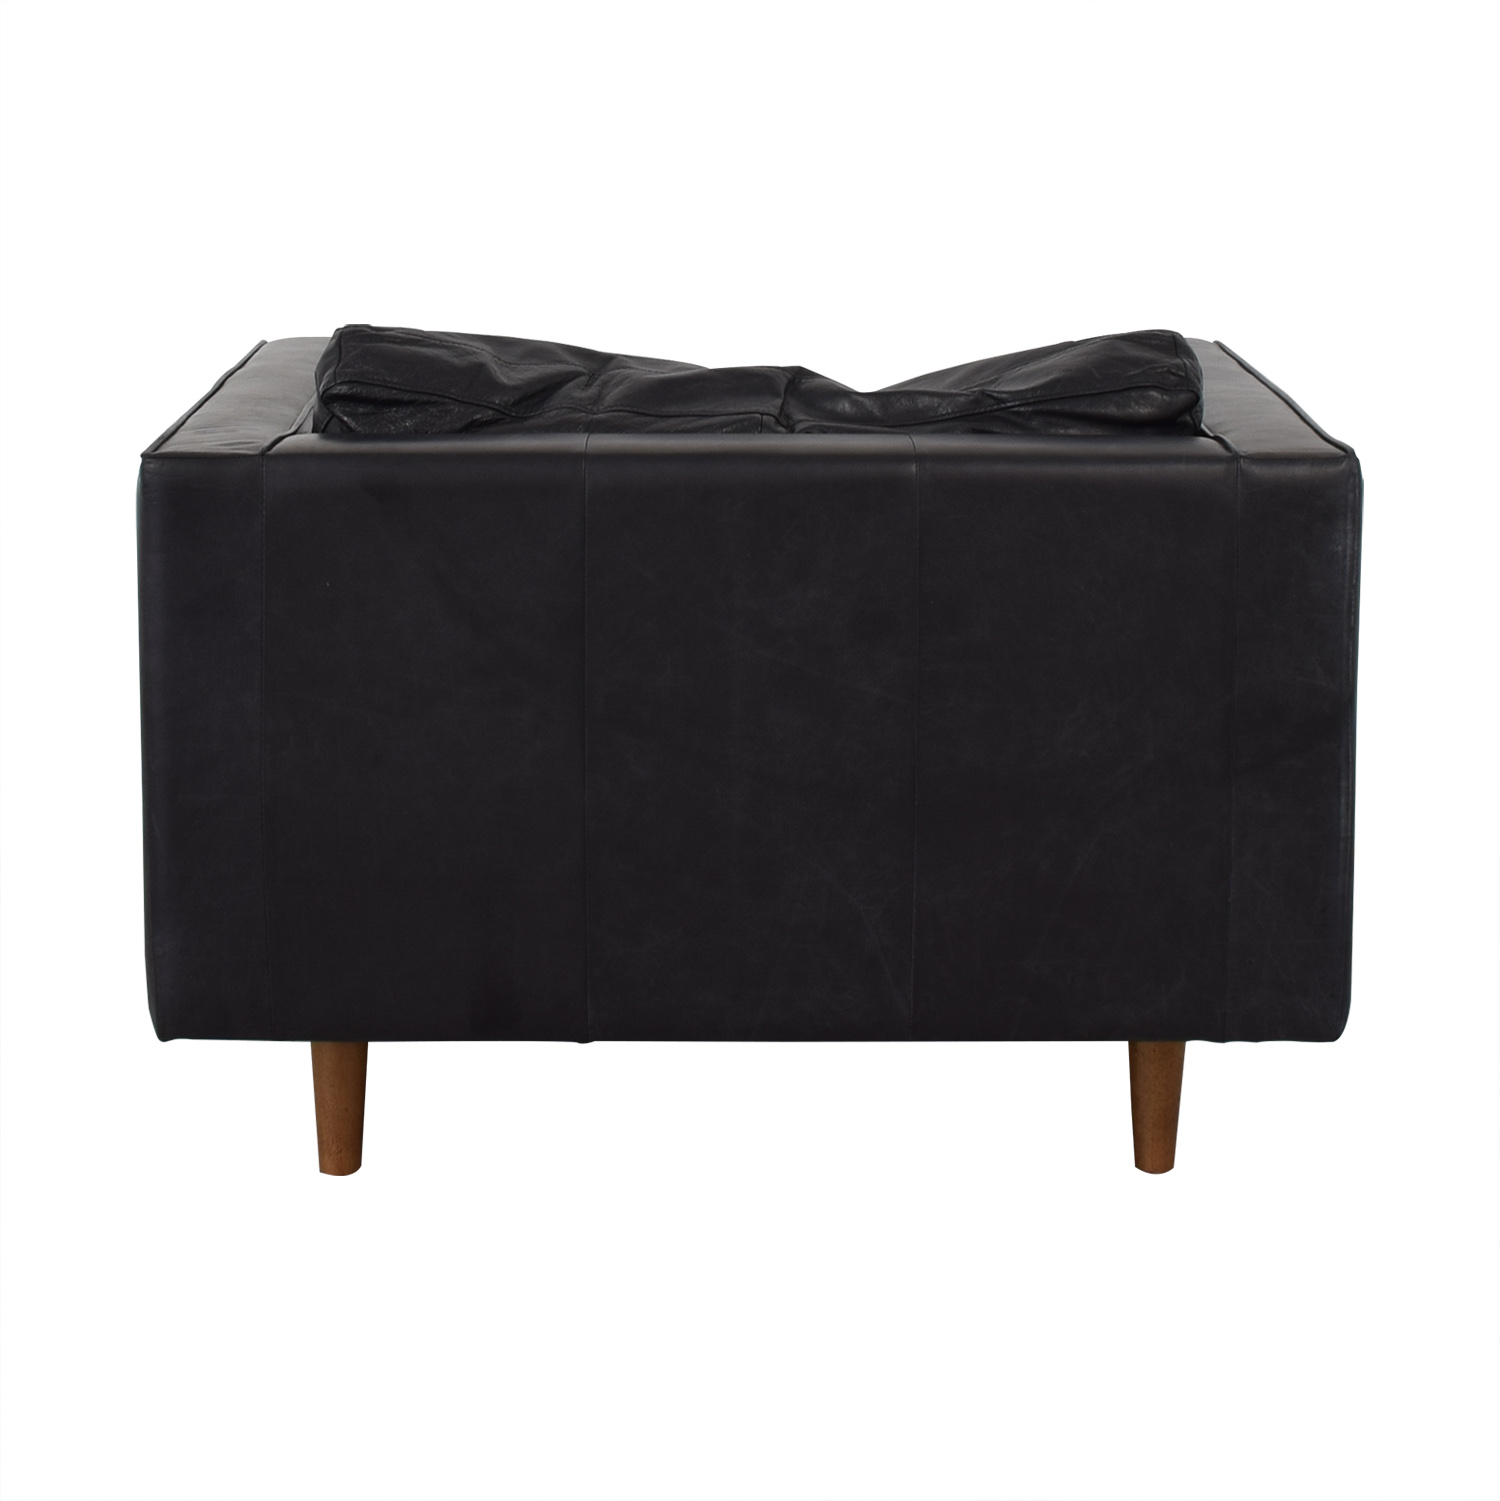 Article Article Sven Oxford Black Chair nj